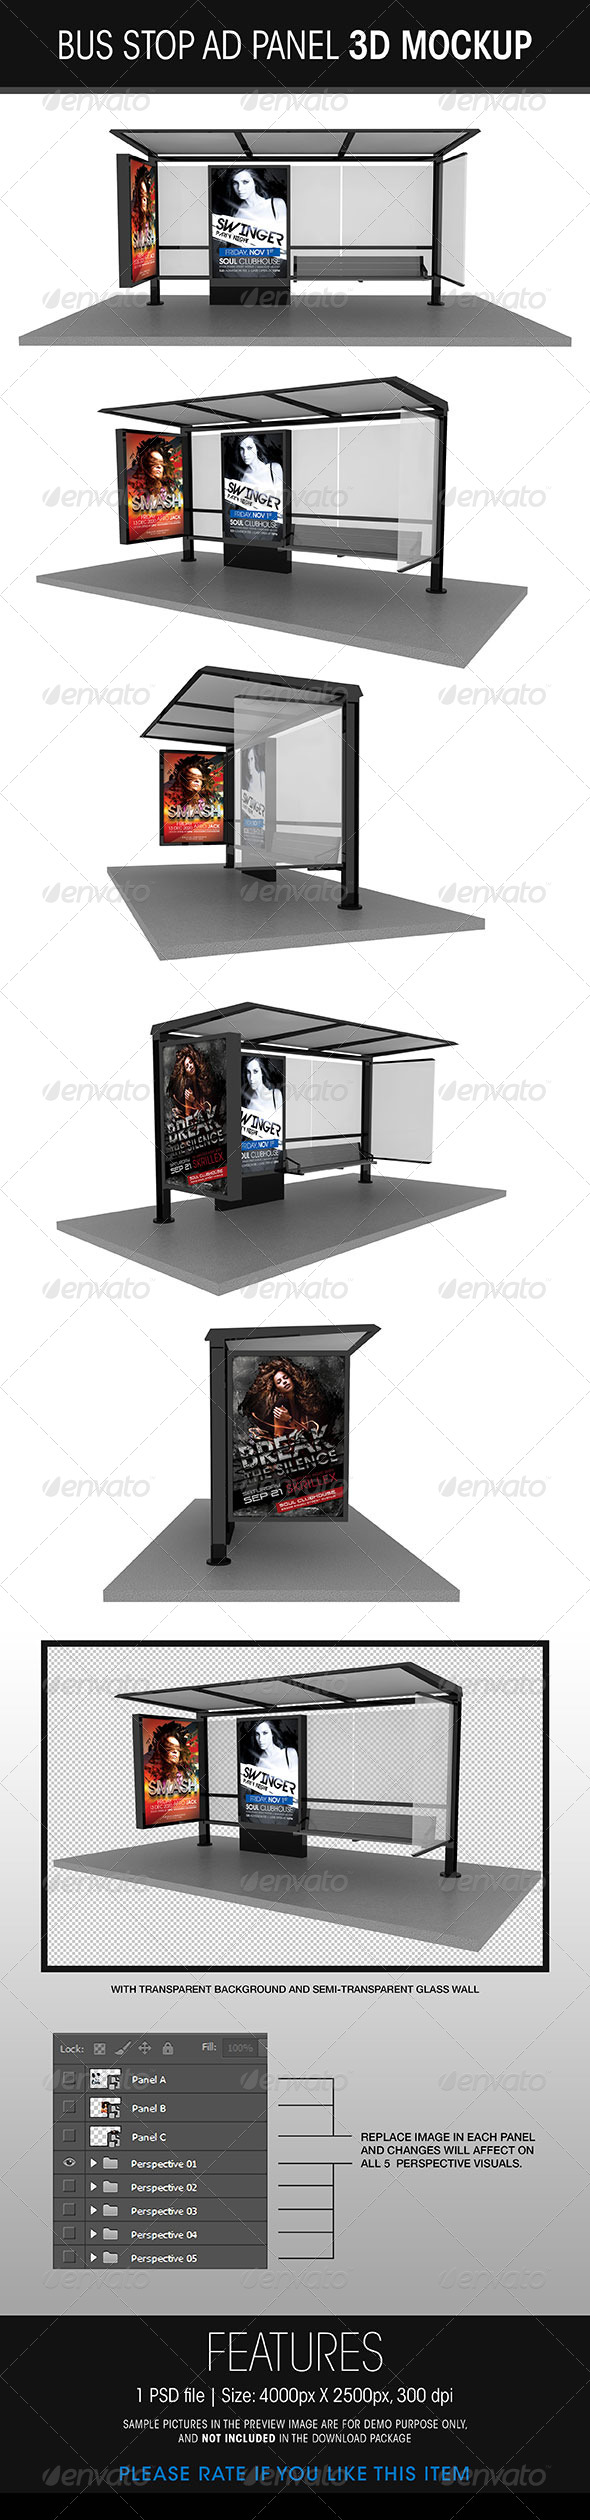 GraphicRiver Bus Stop Ad Panel 3D Mockup 5756973